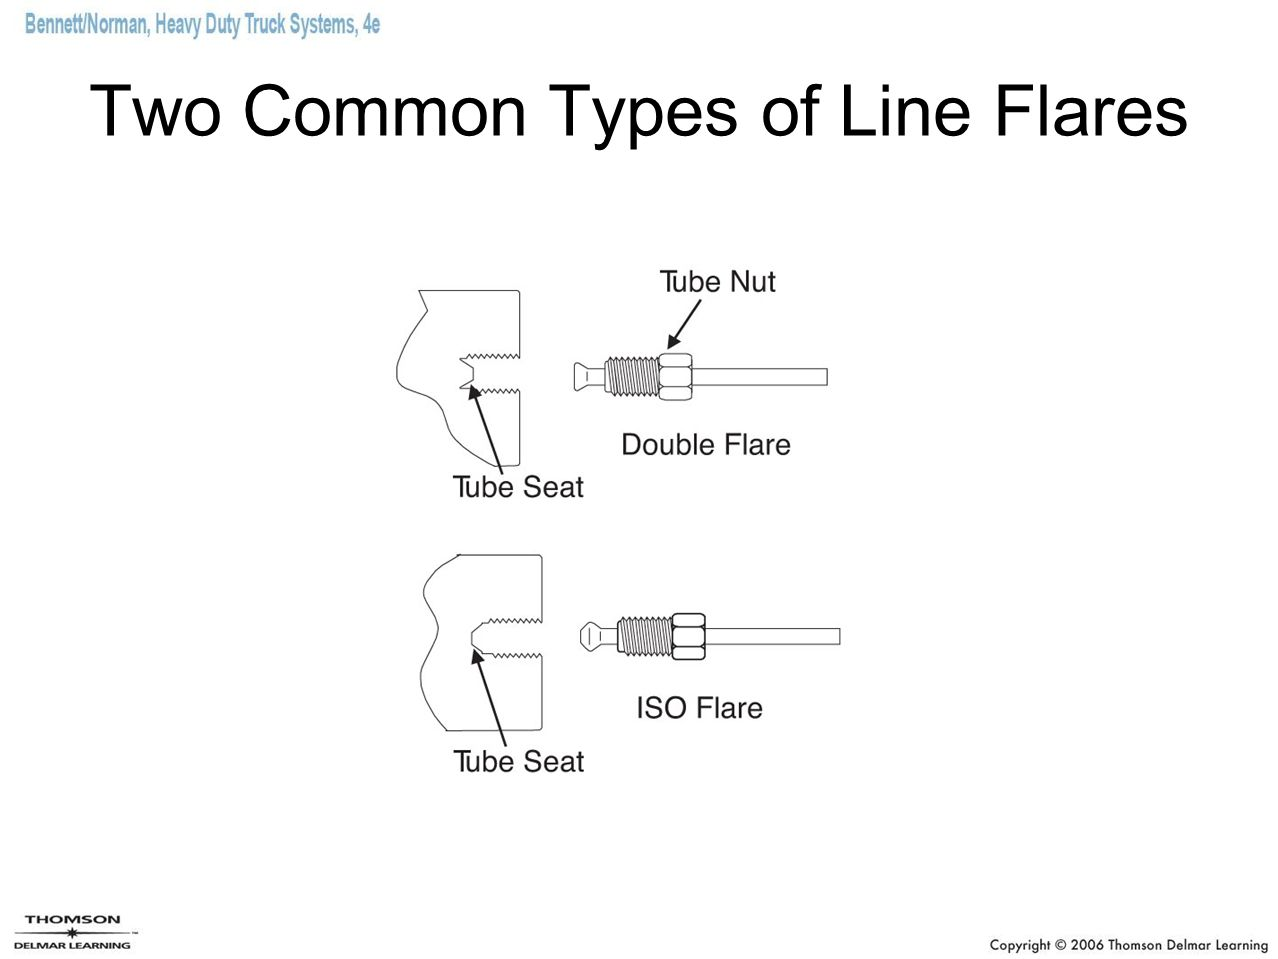 Two Common Types of Line Flares